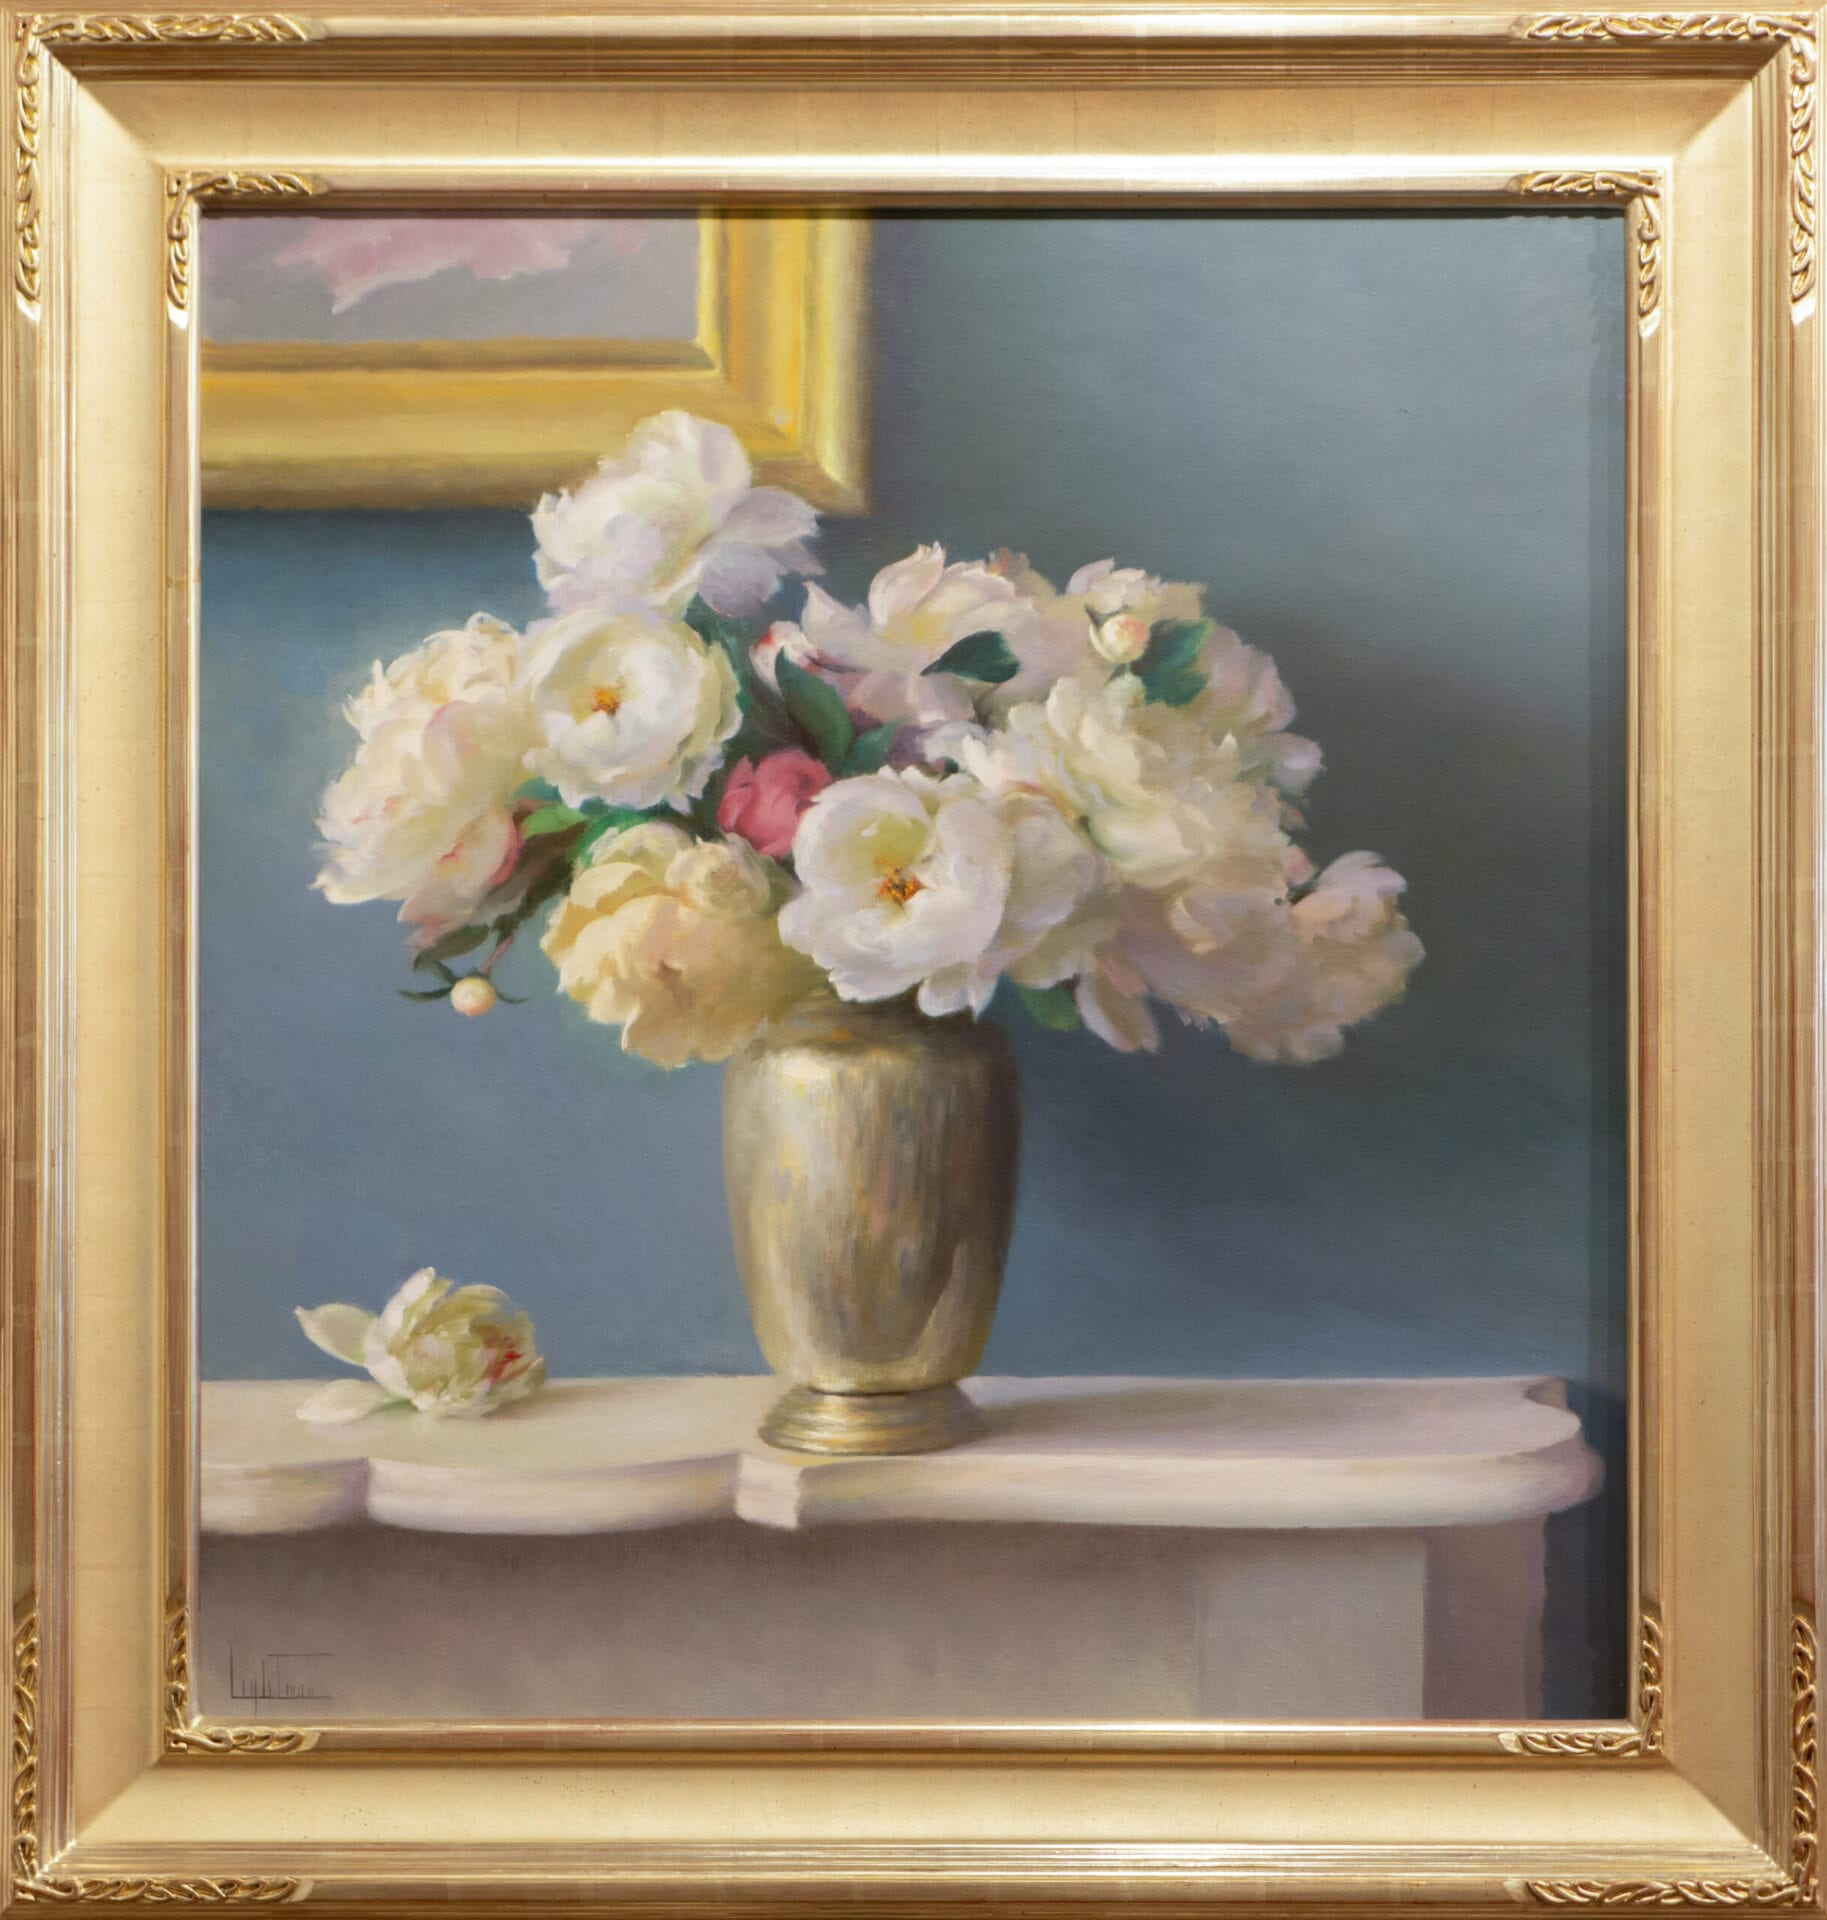 Arrangement on the Mantle | Jean Lightman | Oil | 24 x 32""